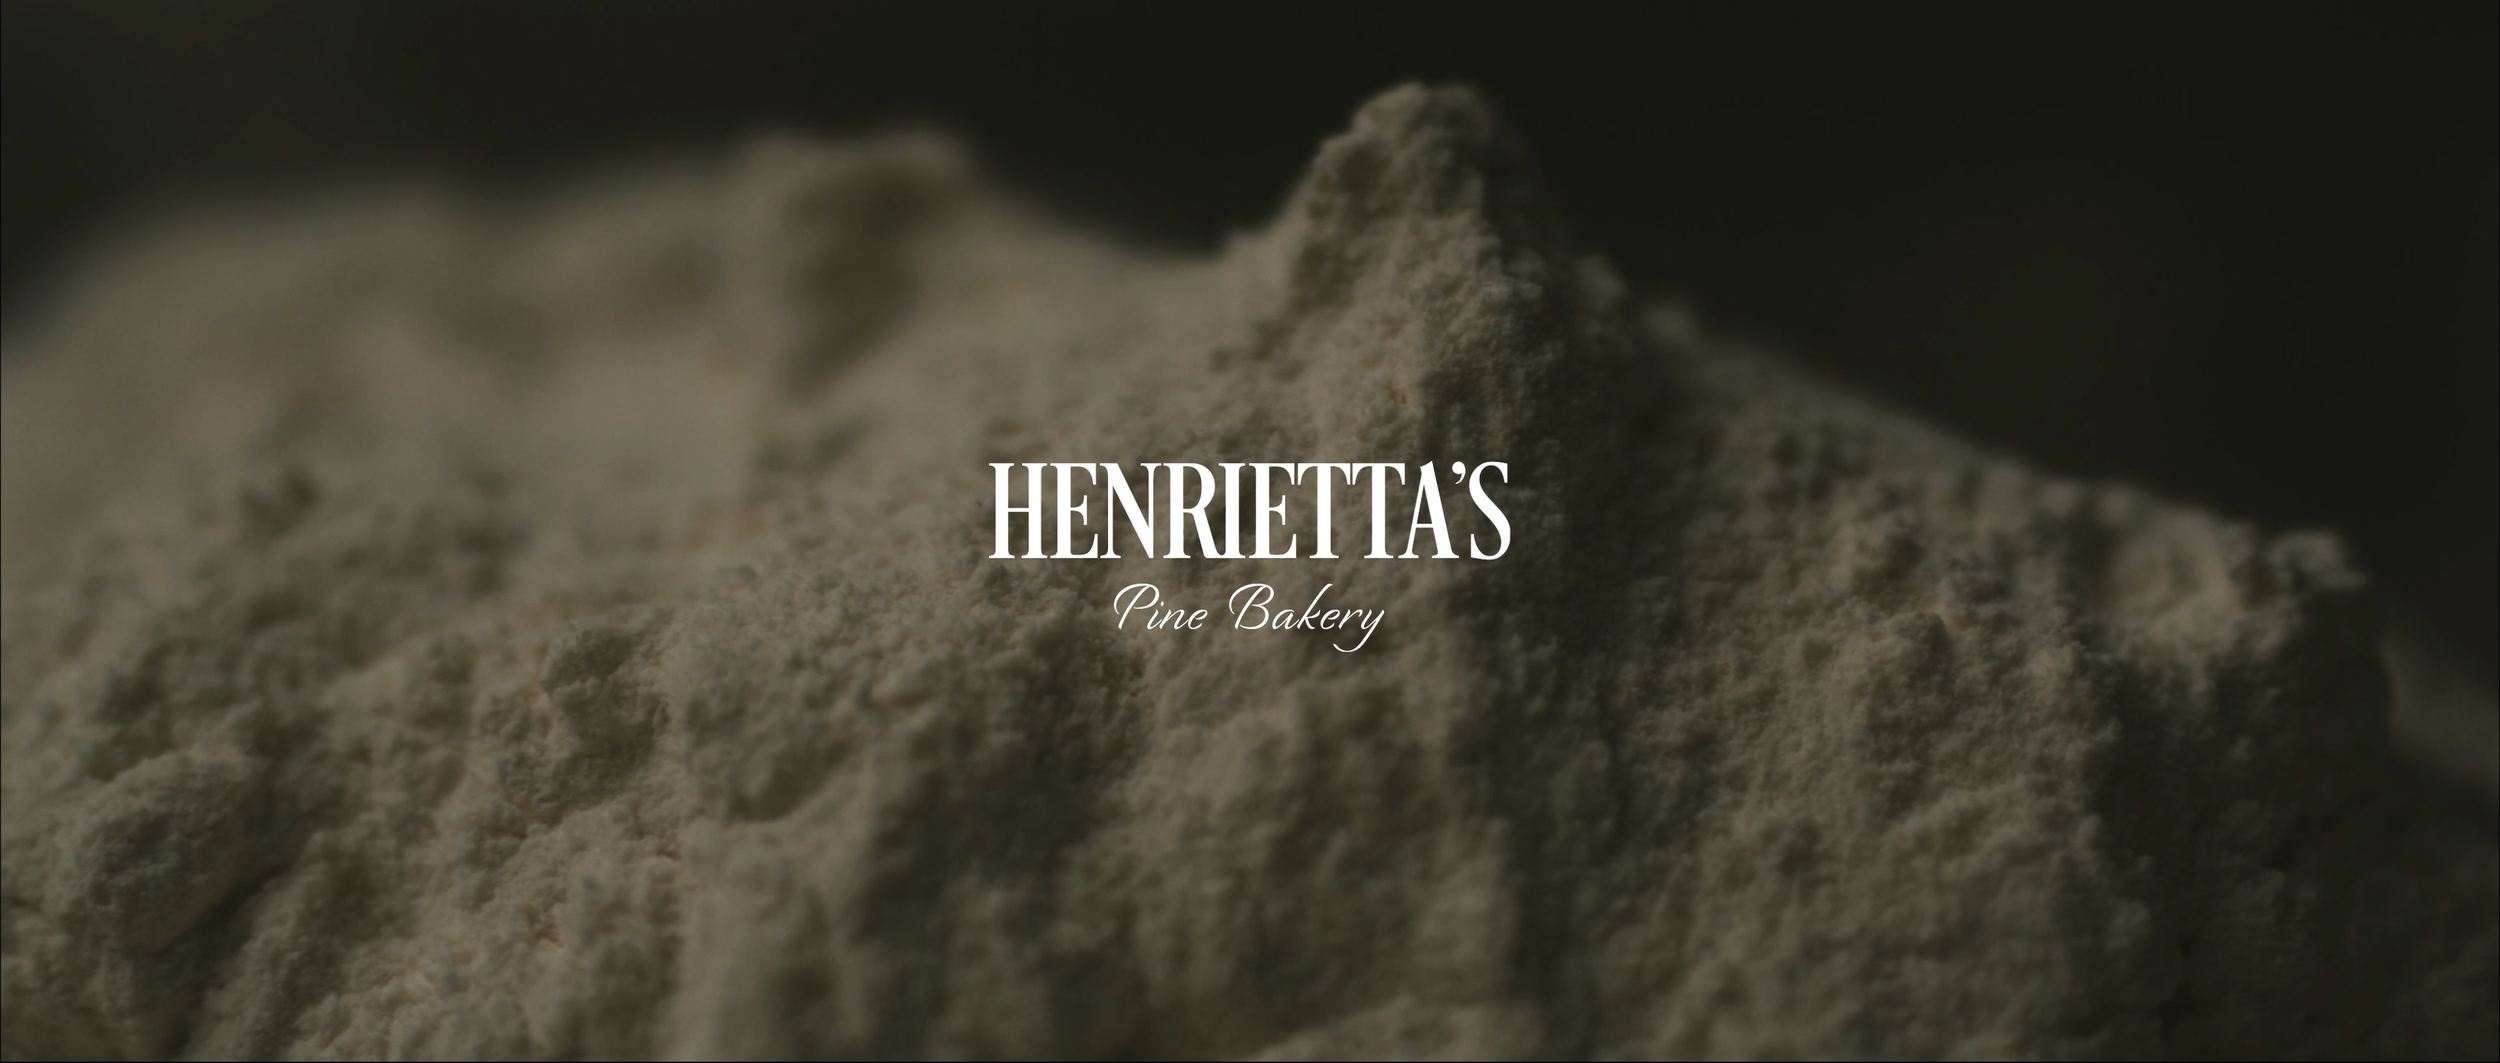 HENRIETTA'S PINE BAKERY - THE DANCE